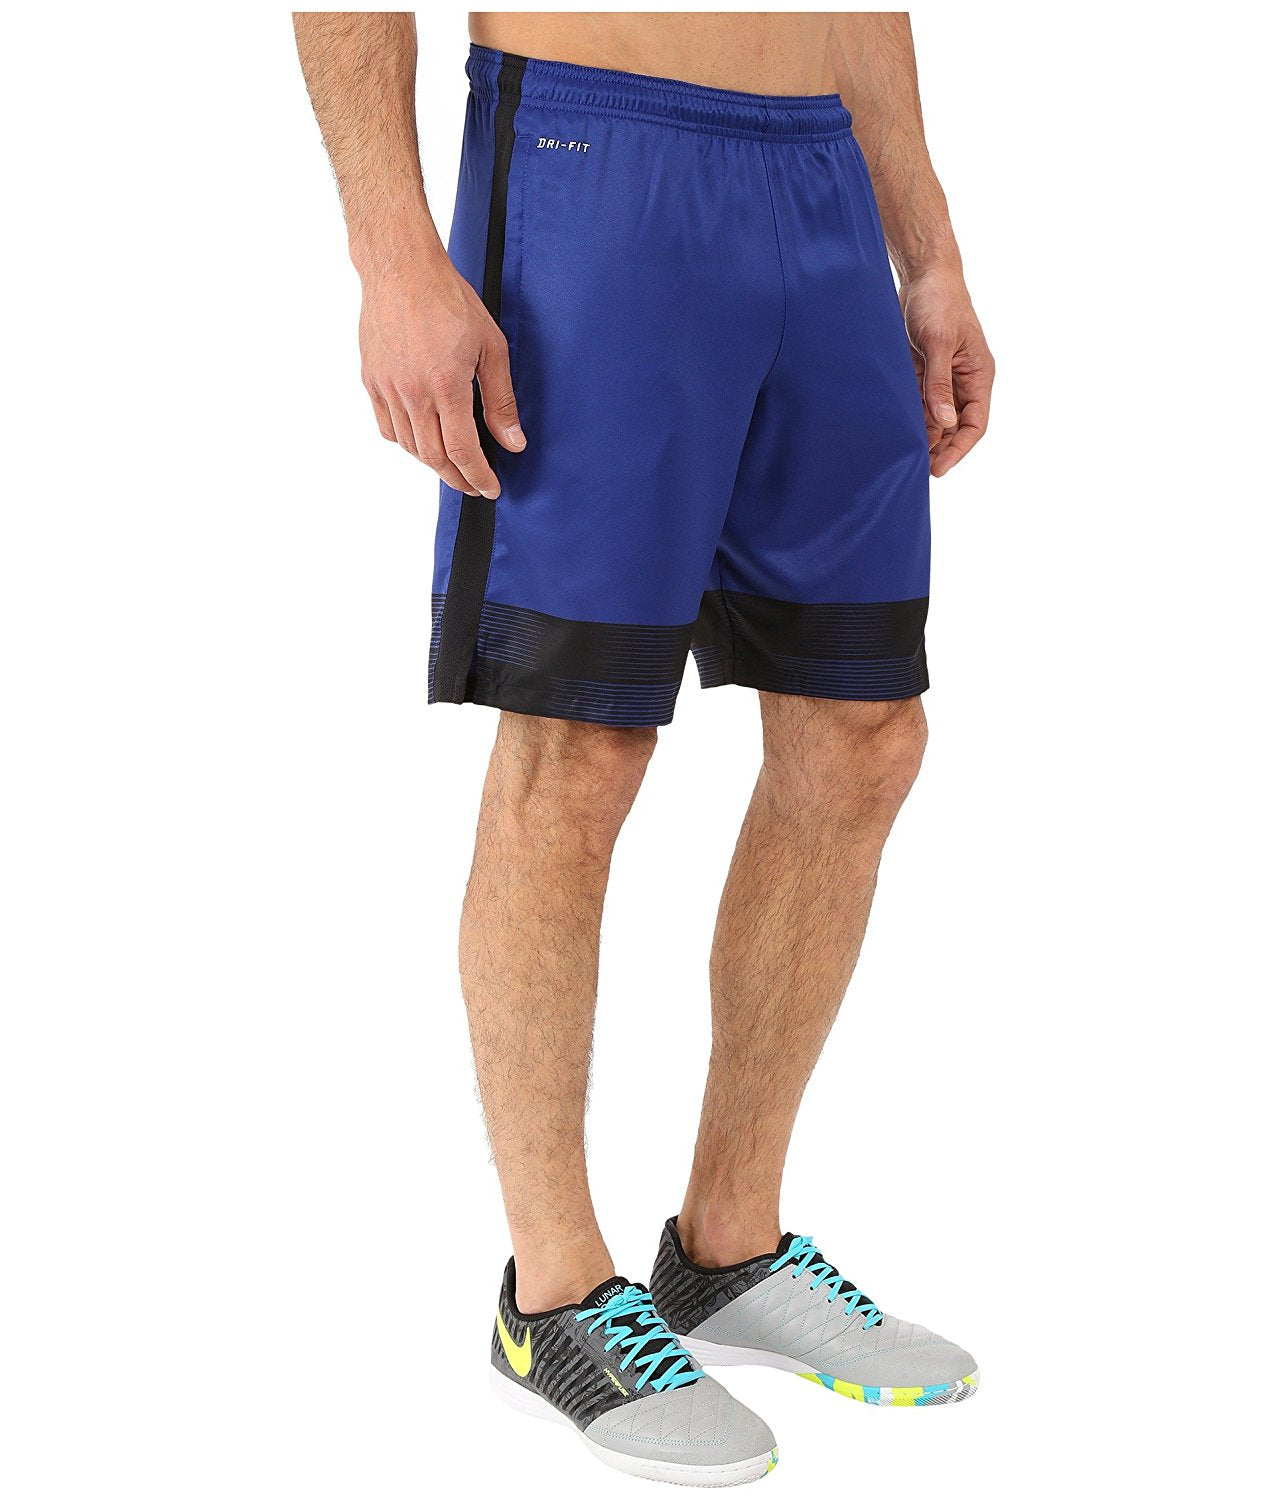 7407b291f2 Nike Men's Strike Soccer Shorts